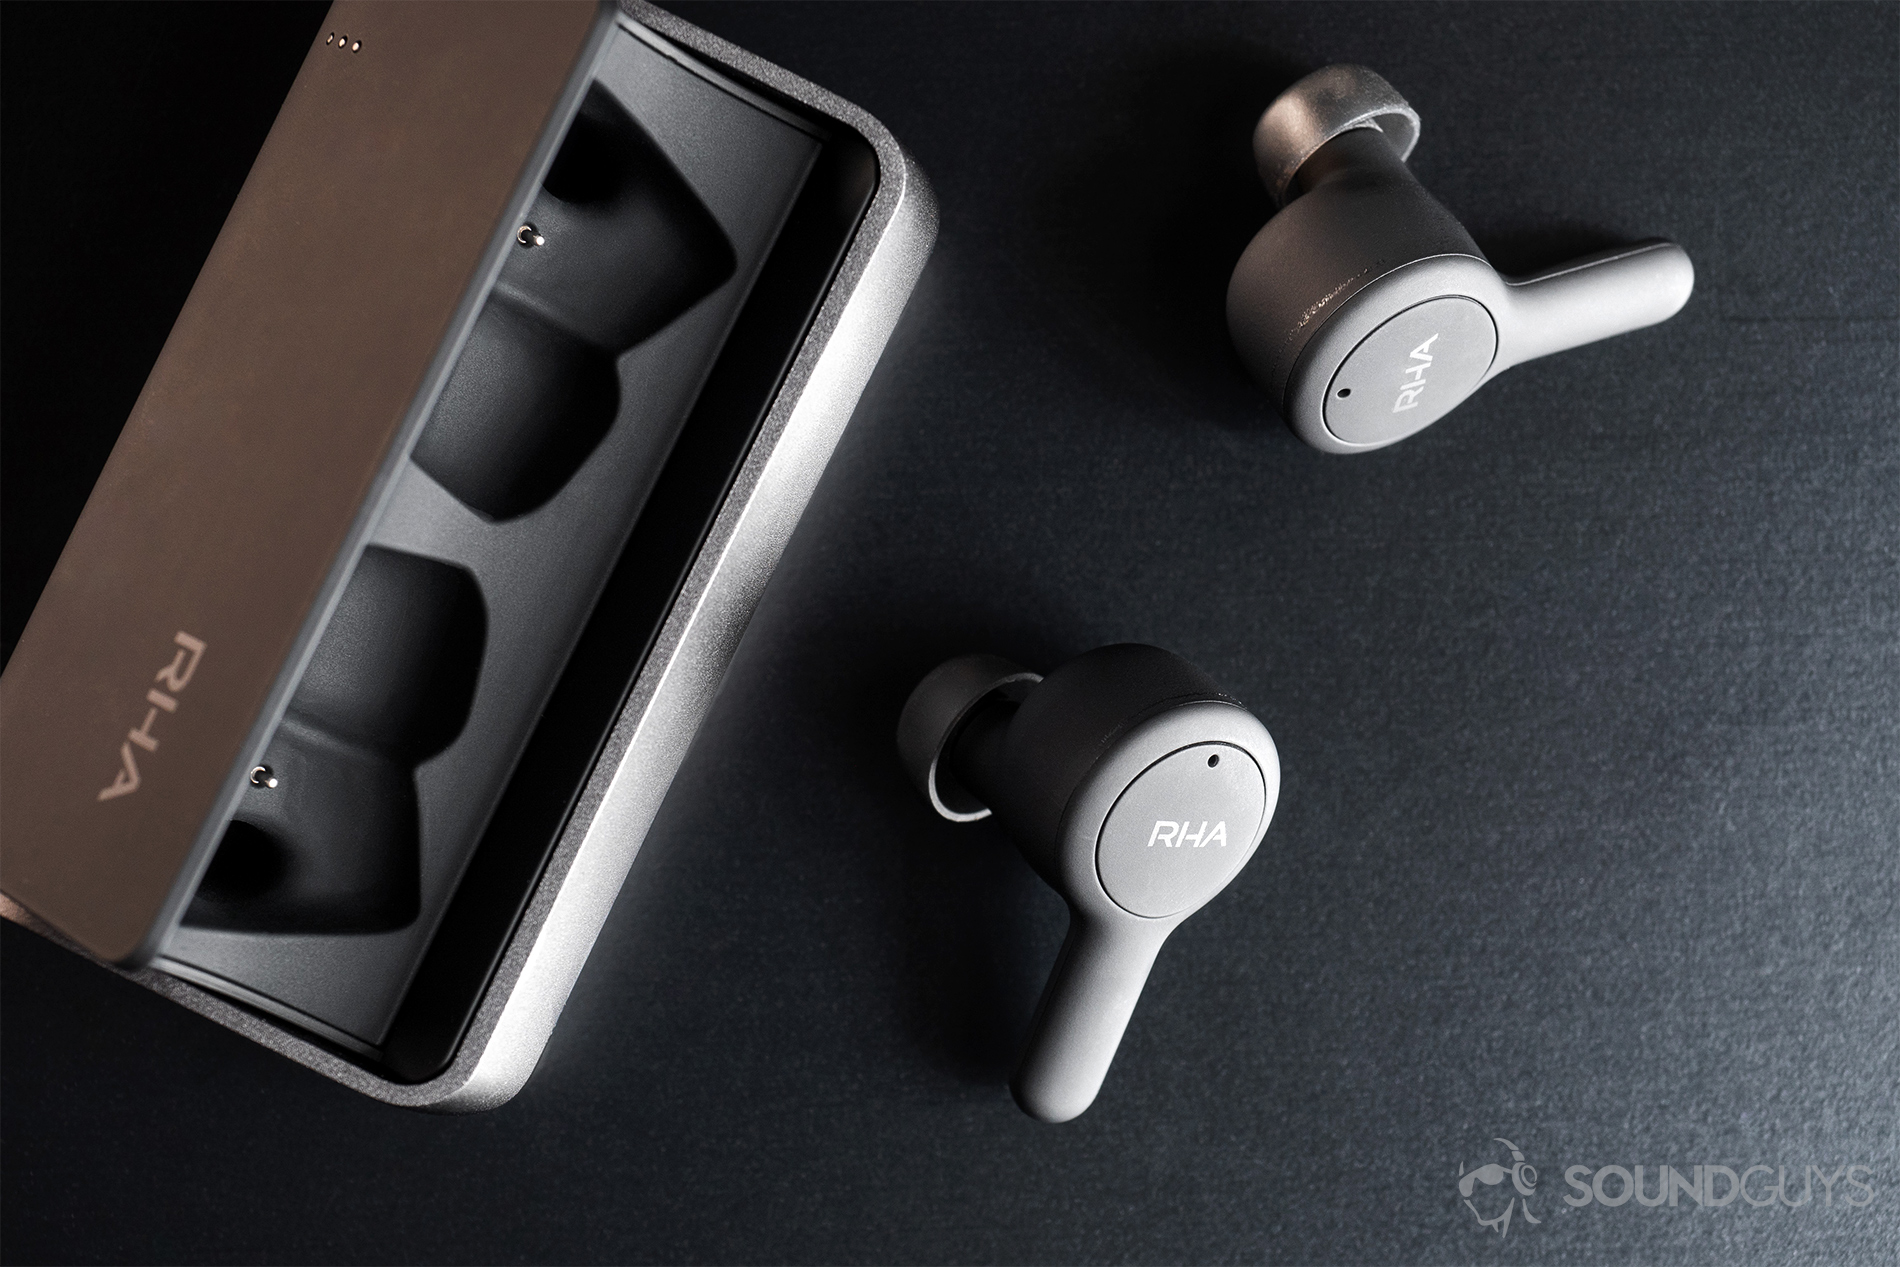 RHA TrueConnect review: Taking aim at the AirPods